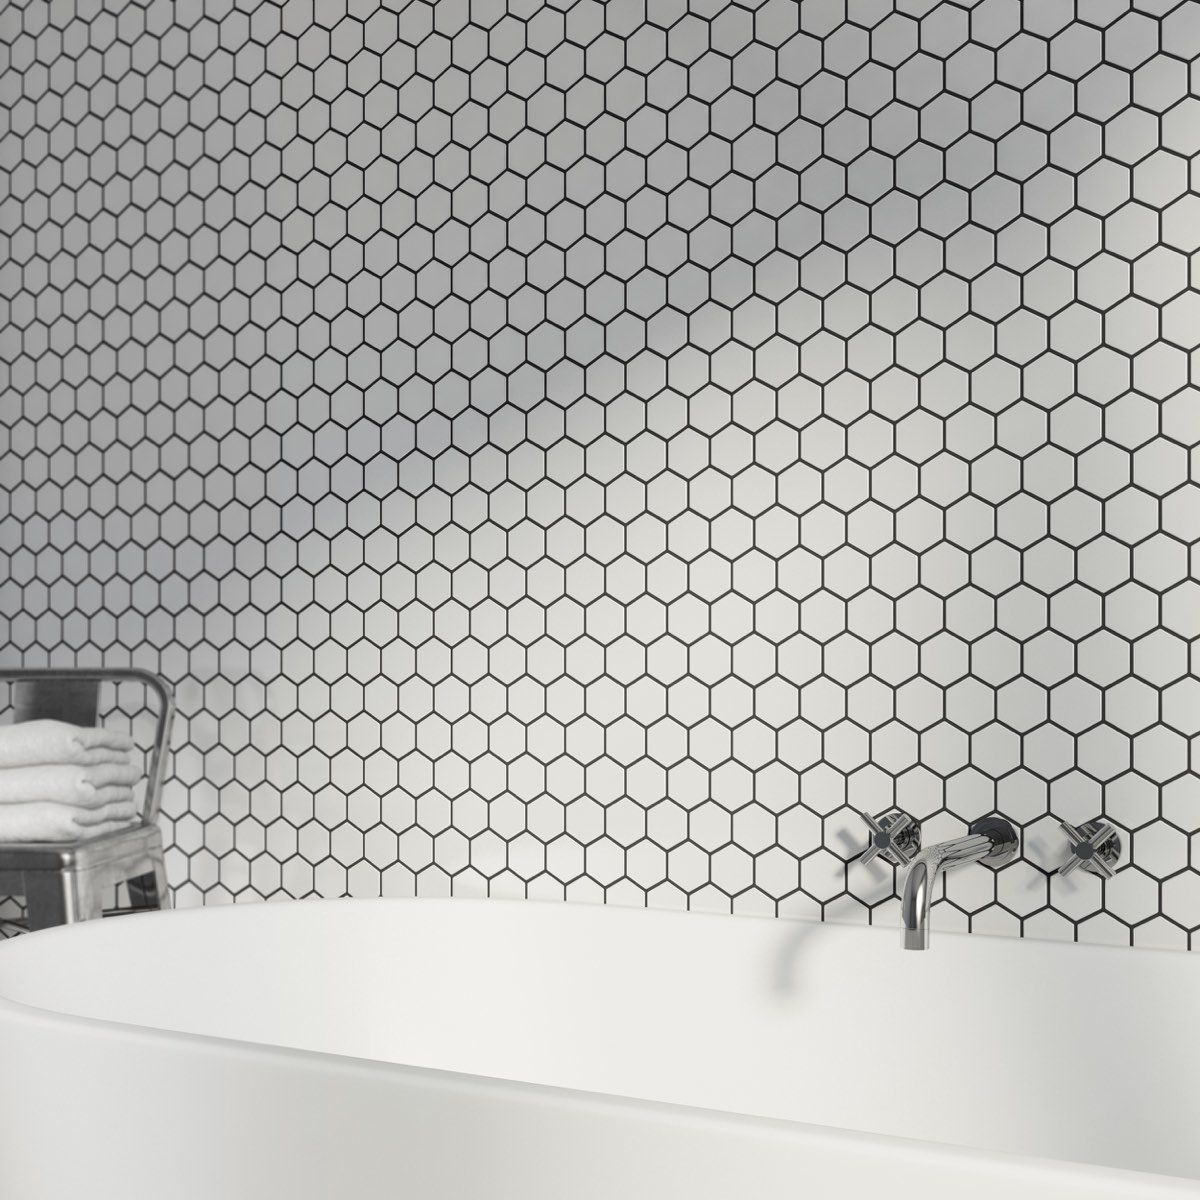 Mosaic hex white tile 300mm x 300mm - 1 sheet | Kitchen and dinning ...